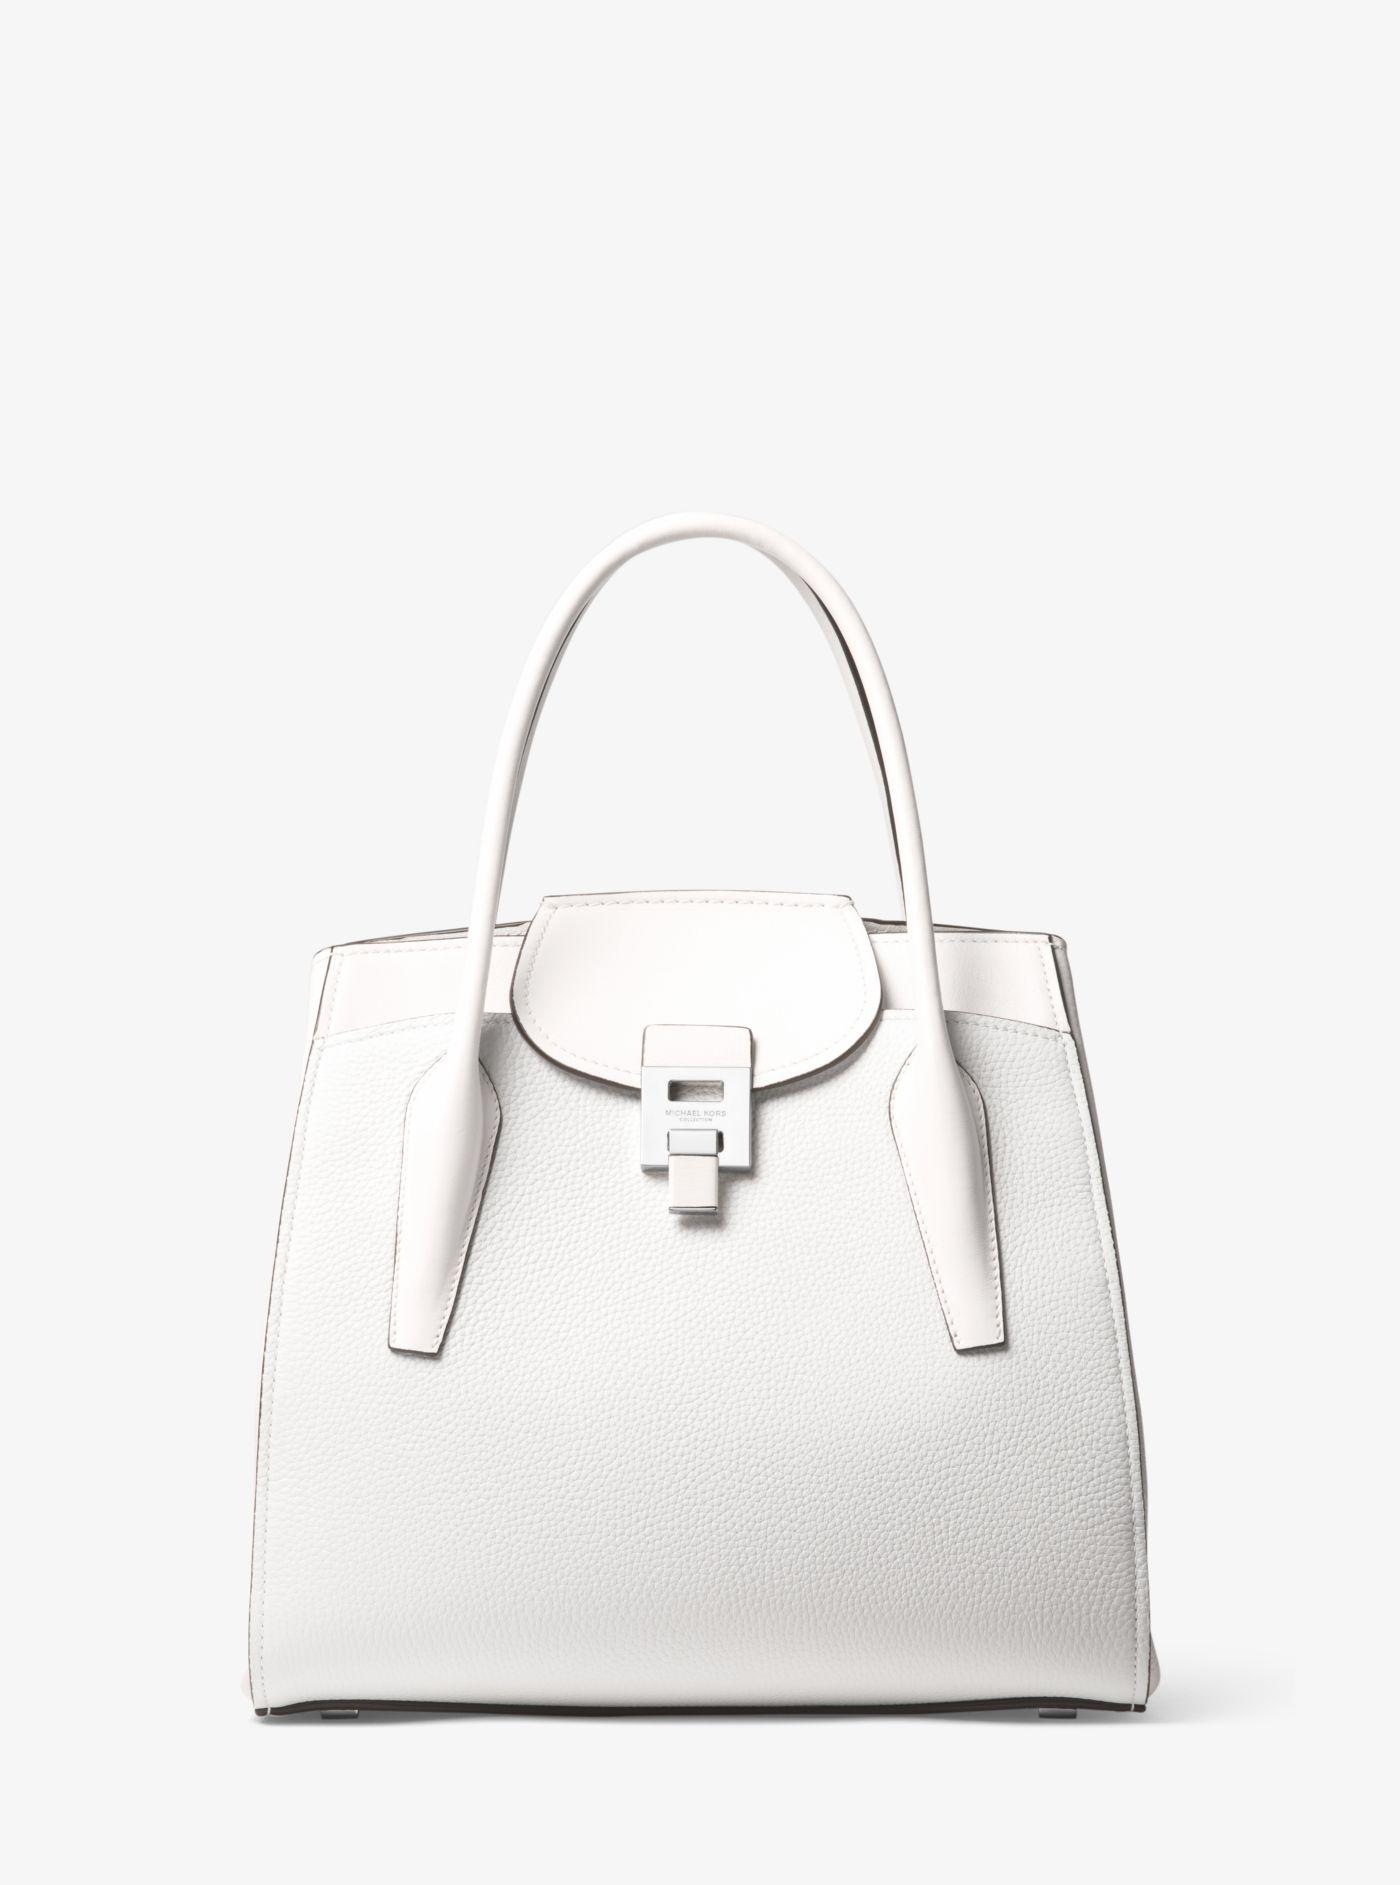 d0c081f7359c Lyst - Michael Kors Bancroft Large Pebbled Calf Leather Satchel in White